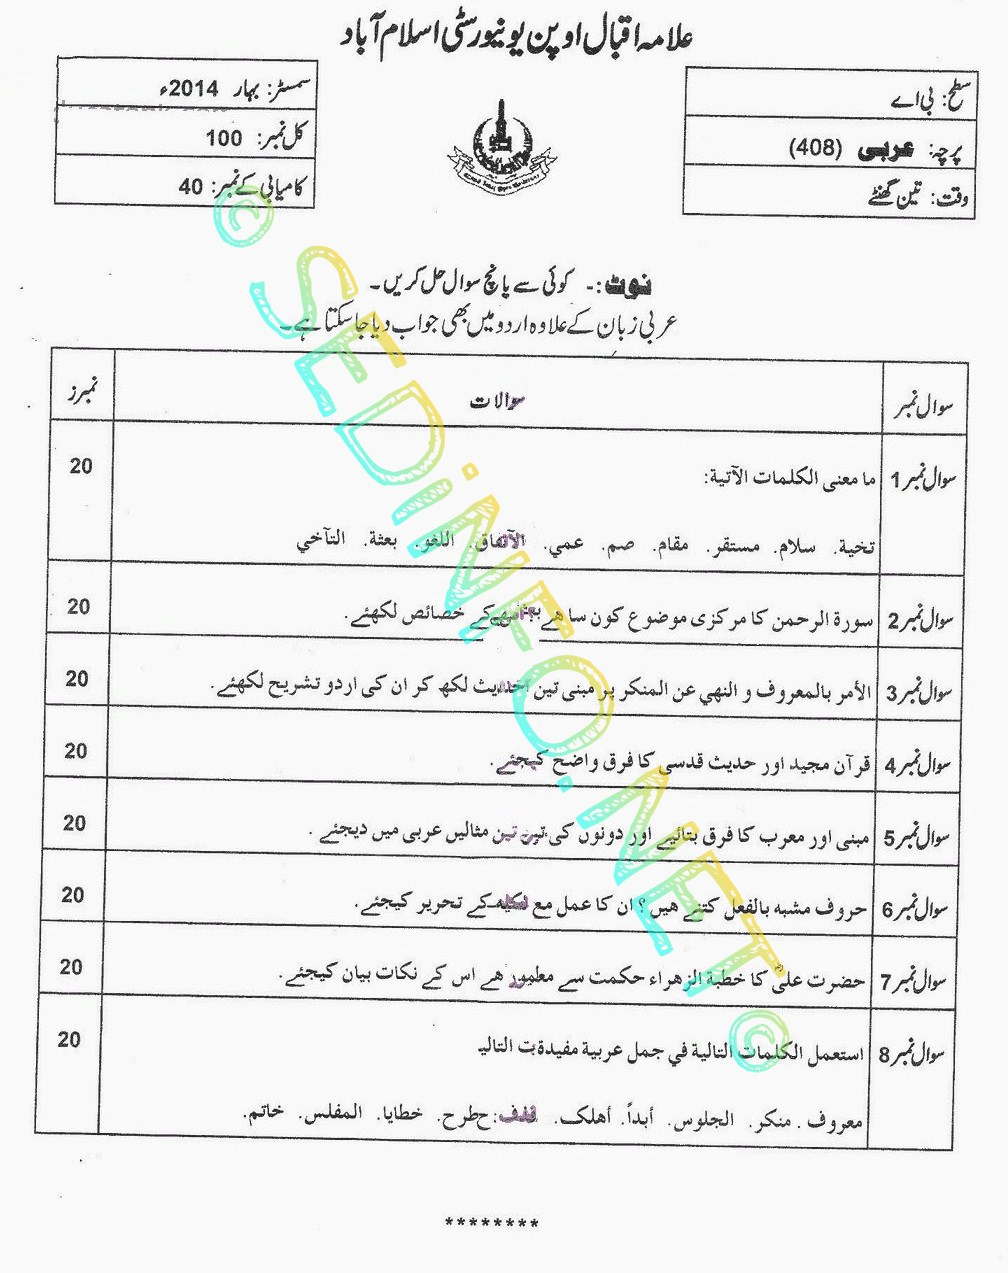 AIOU BA Past Papers Code 408 Spring 2014